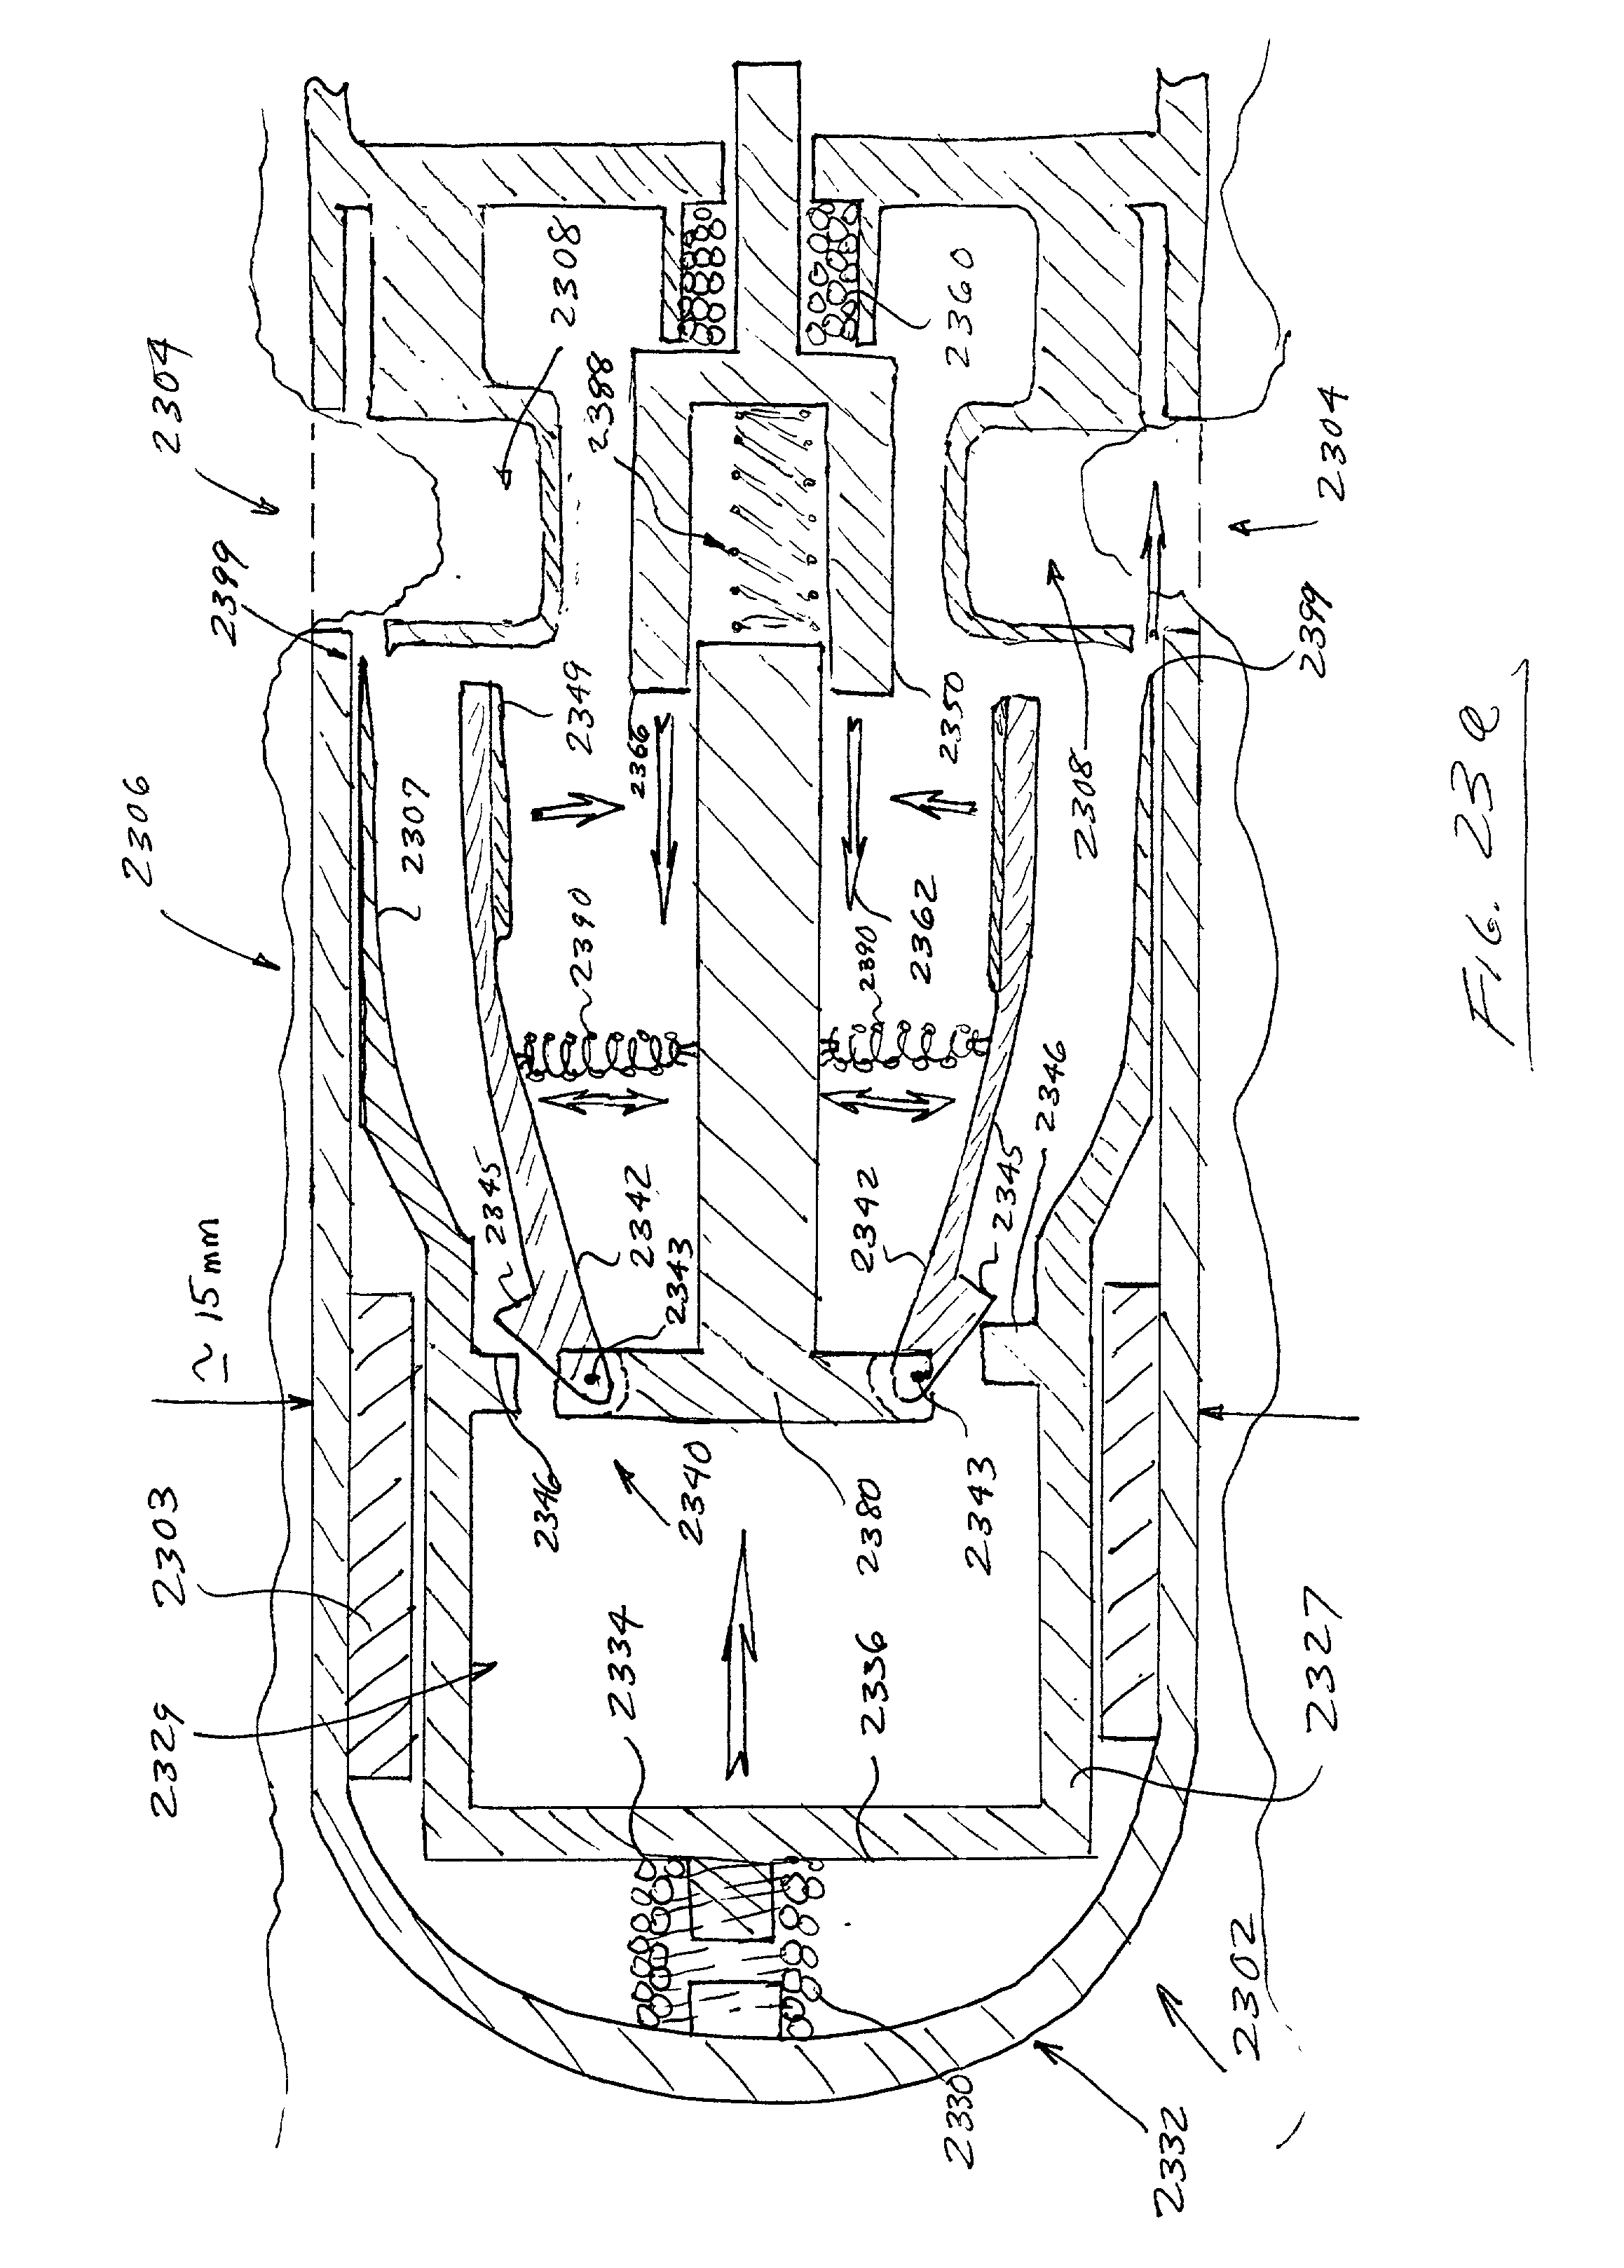 Snap Wiring Diagram Honda Motorcycle Fuel System St70 Cm200t Diagrams Elsalvadorla